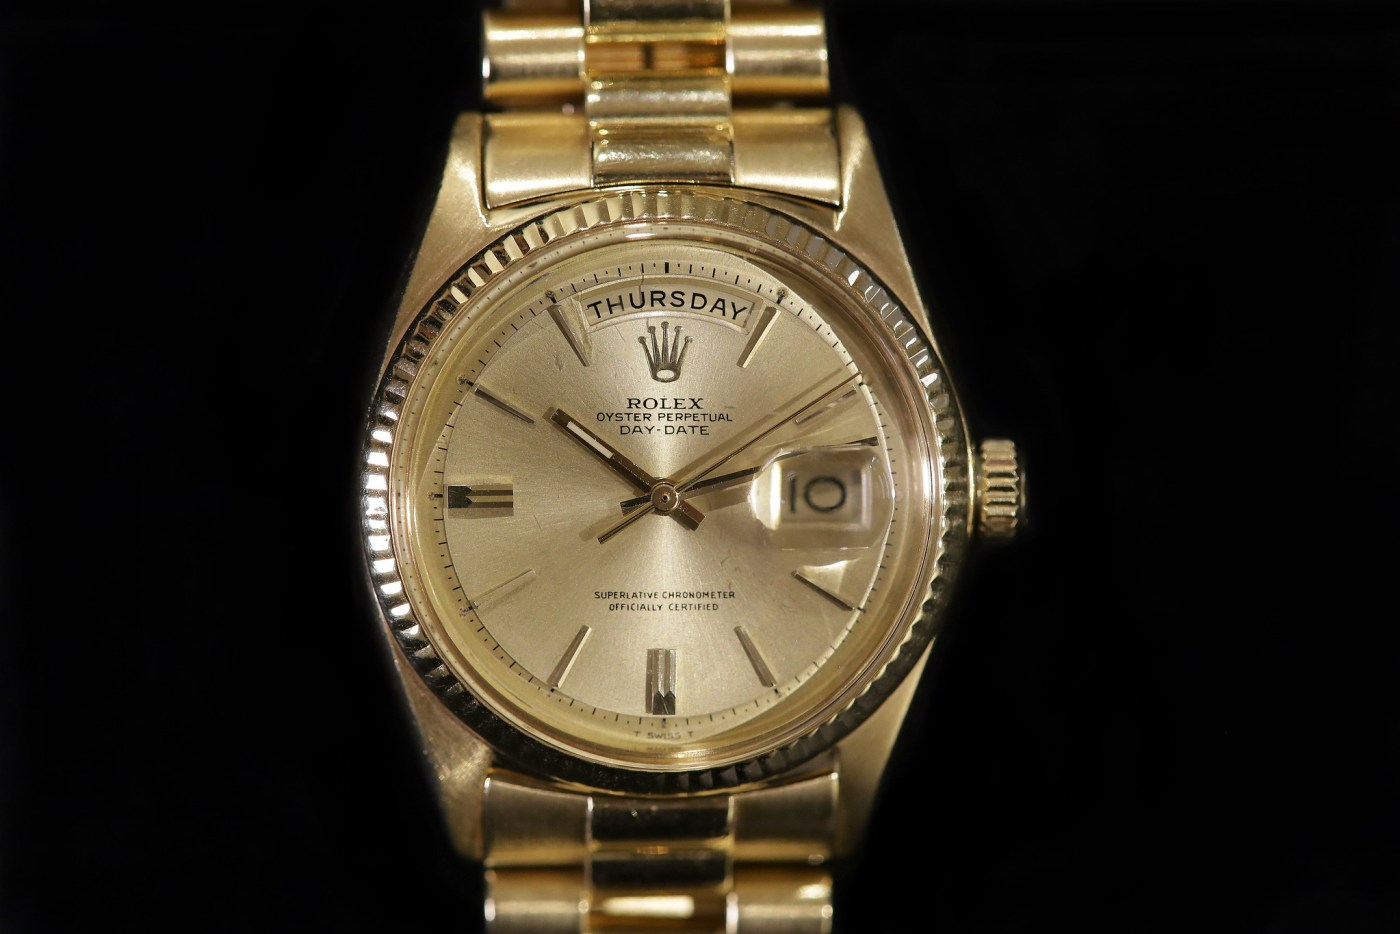 Jack Nicklaus 1967 Yellow Gold Rolex Day-Date Ref. 1803 dial close-up